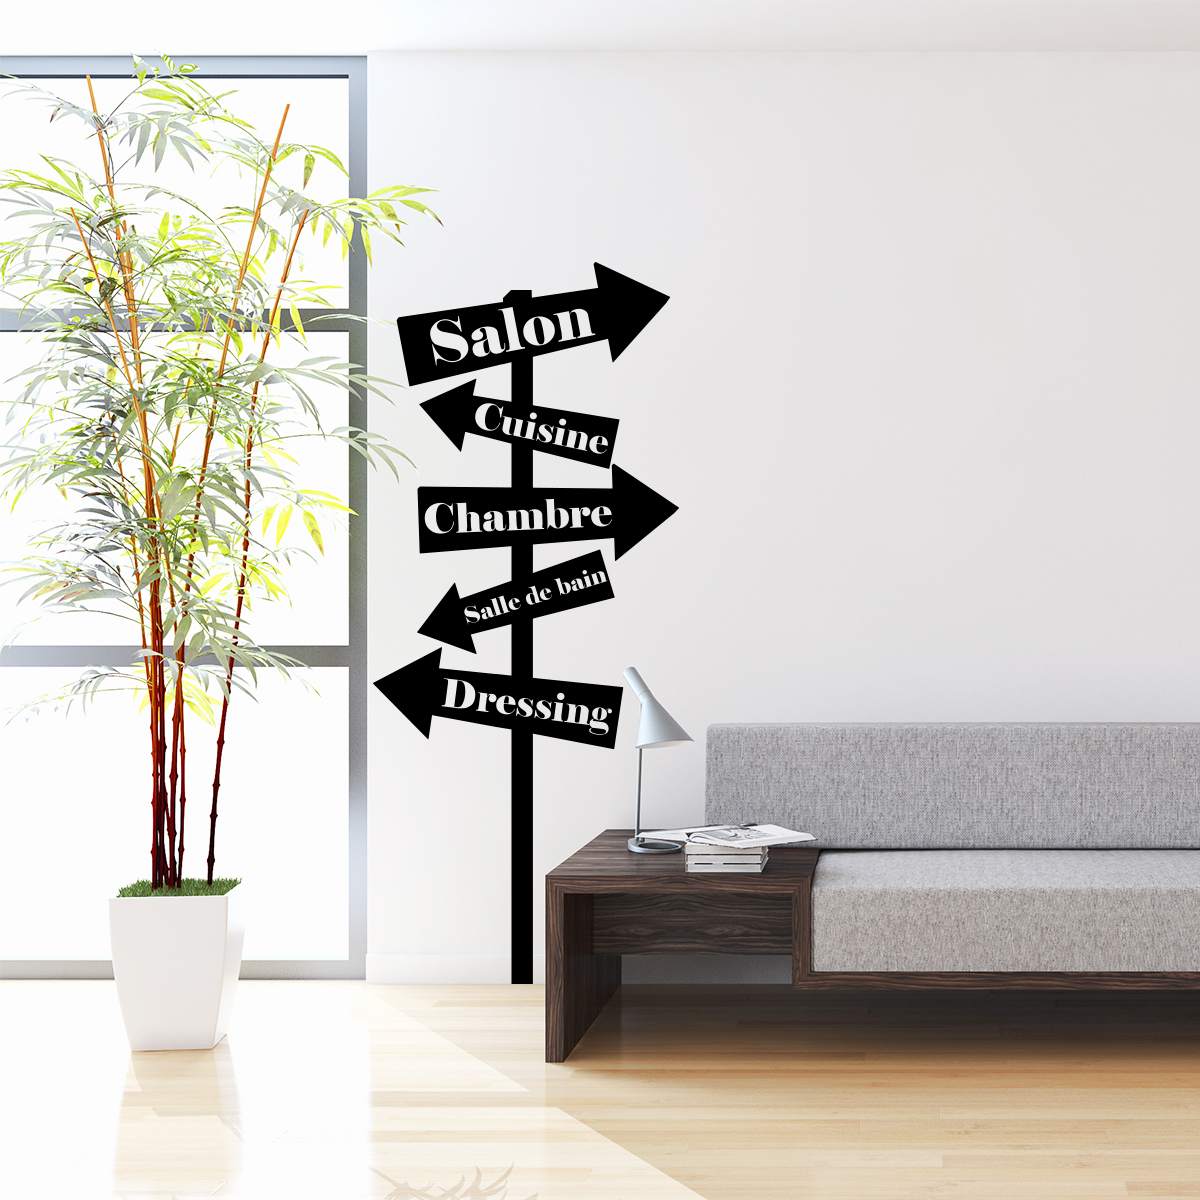 sticker citation salon cuisine chambre panneaux stickers citations fran ais ambiance sticker. Black Bedroom Furniture Sets. Home Design Ideas